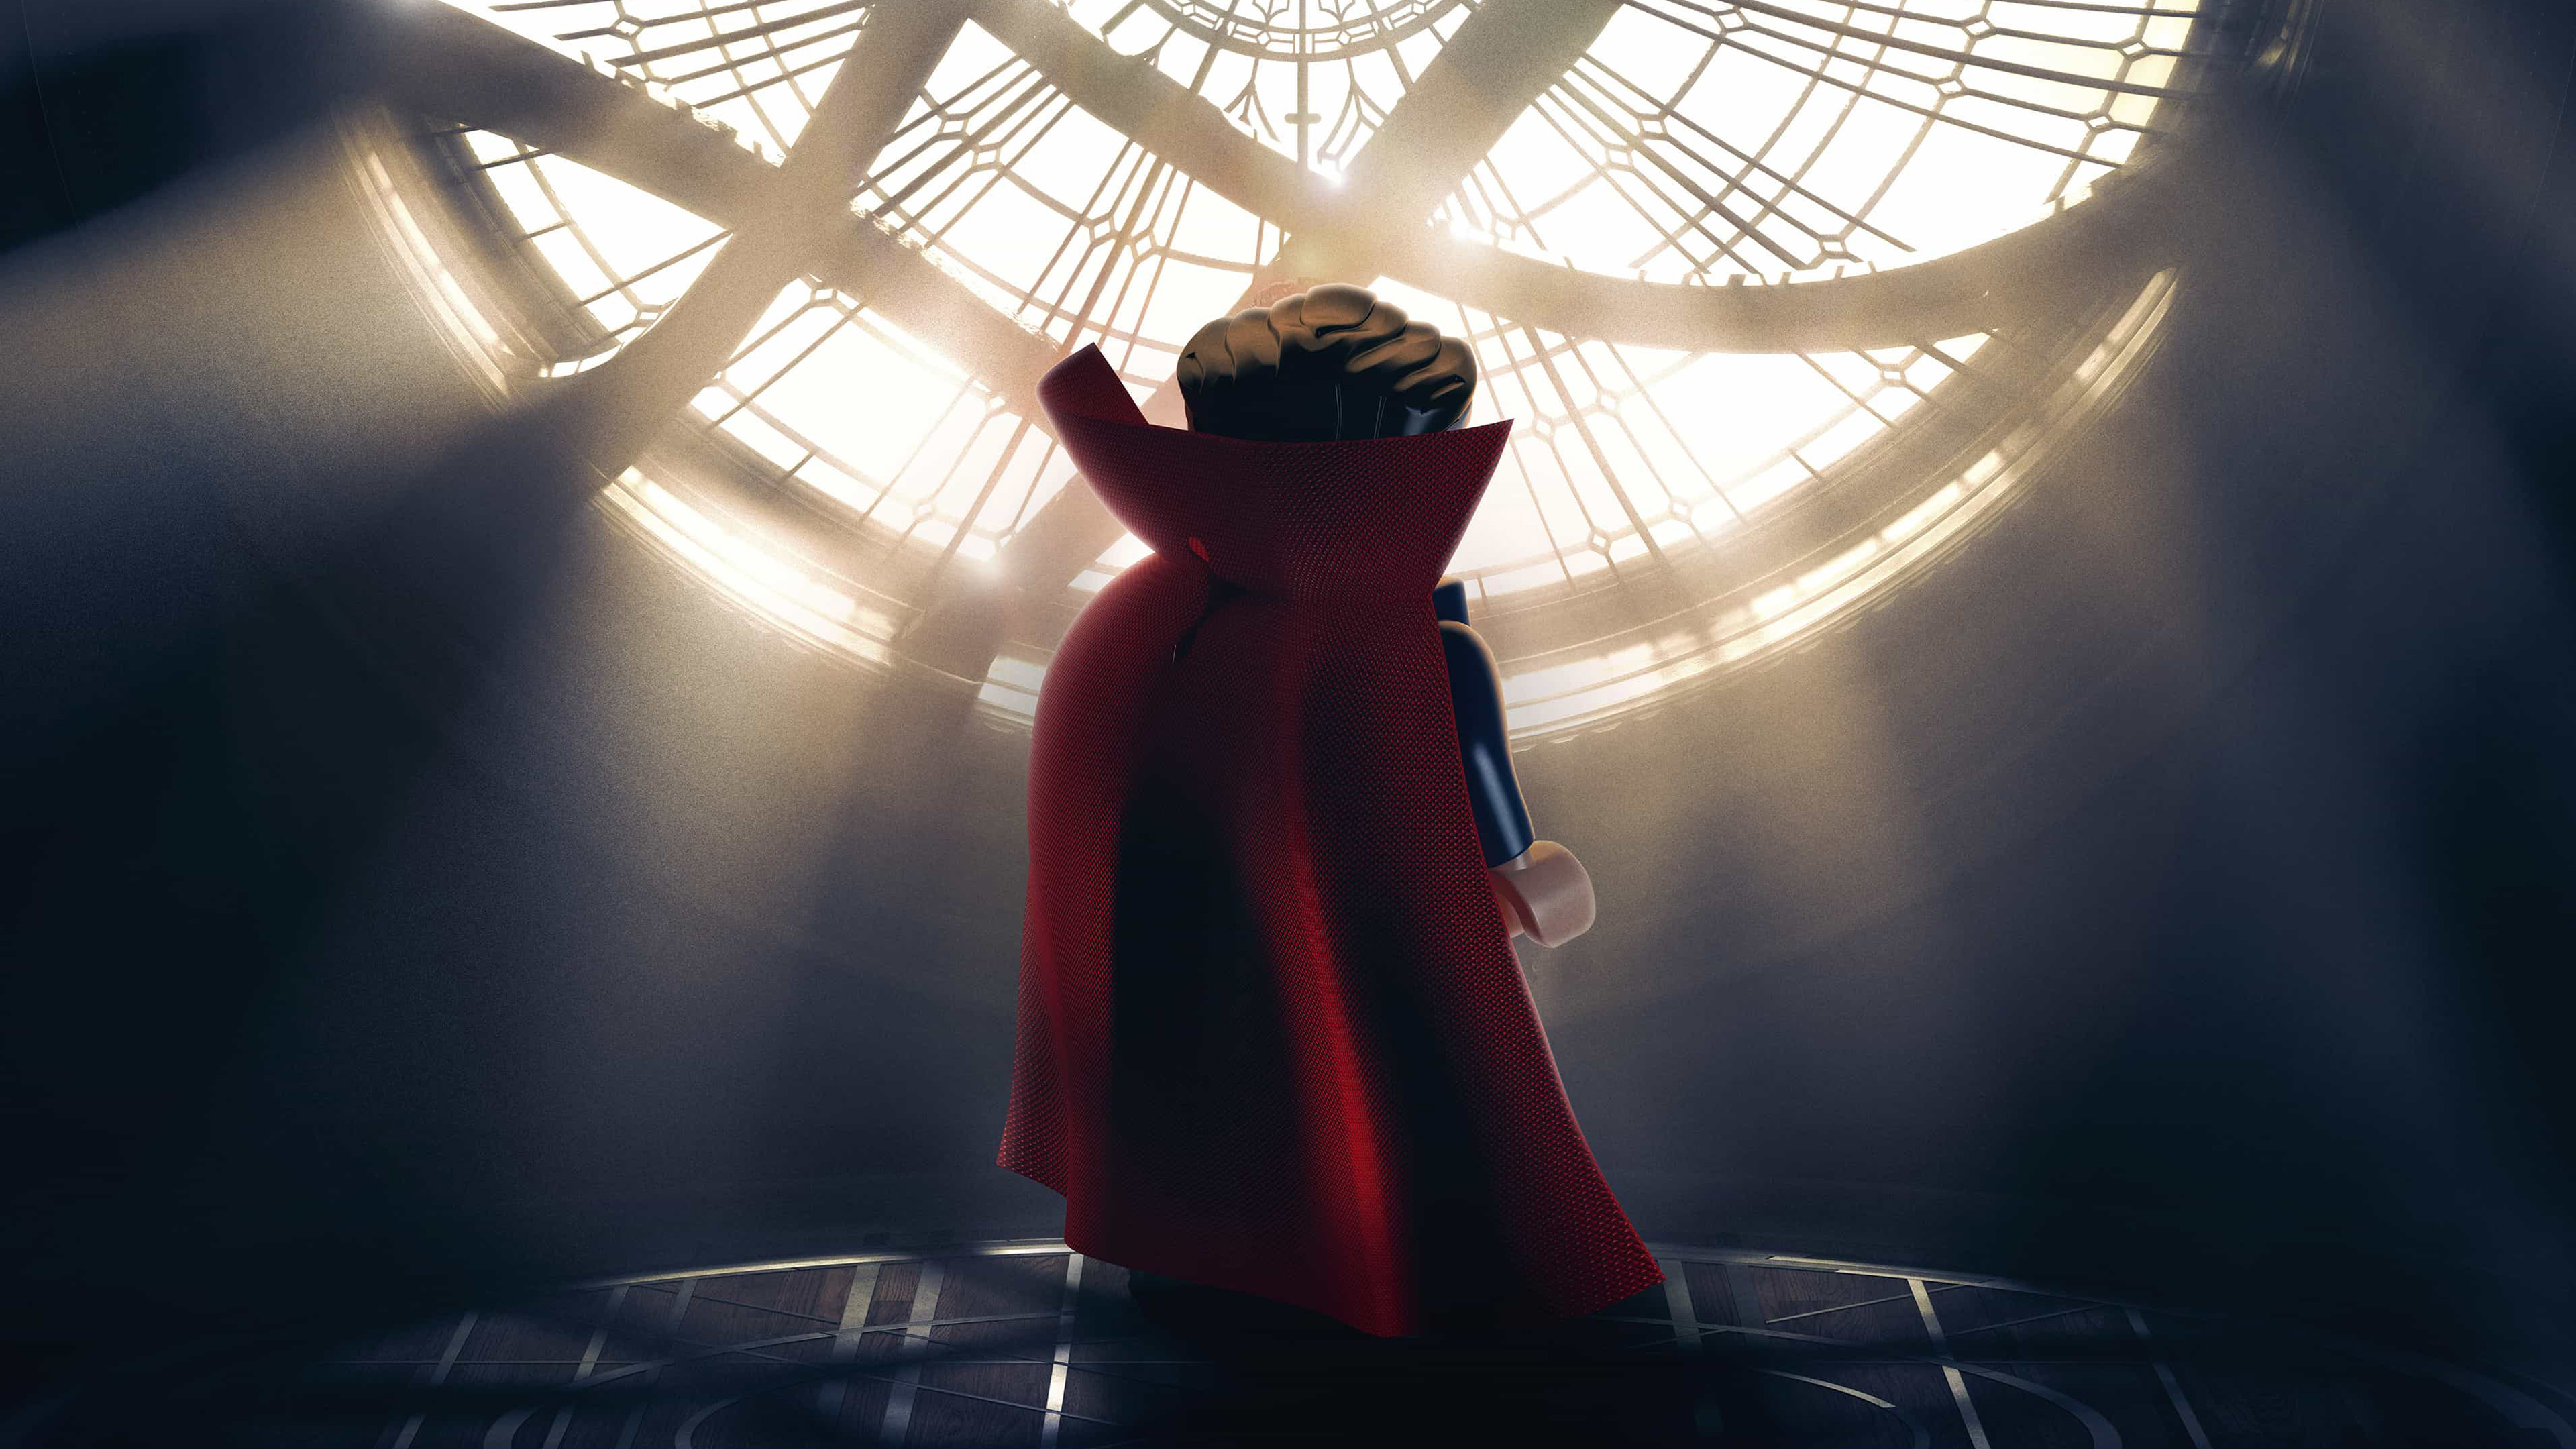 Superhero Hd Wallpapers Iphone Lego Doctor Strange 4k Wallpapers Hd Wallpapers Id 19755